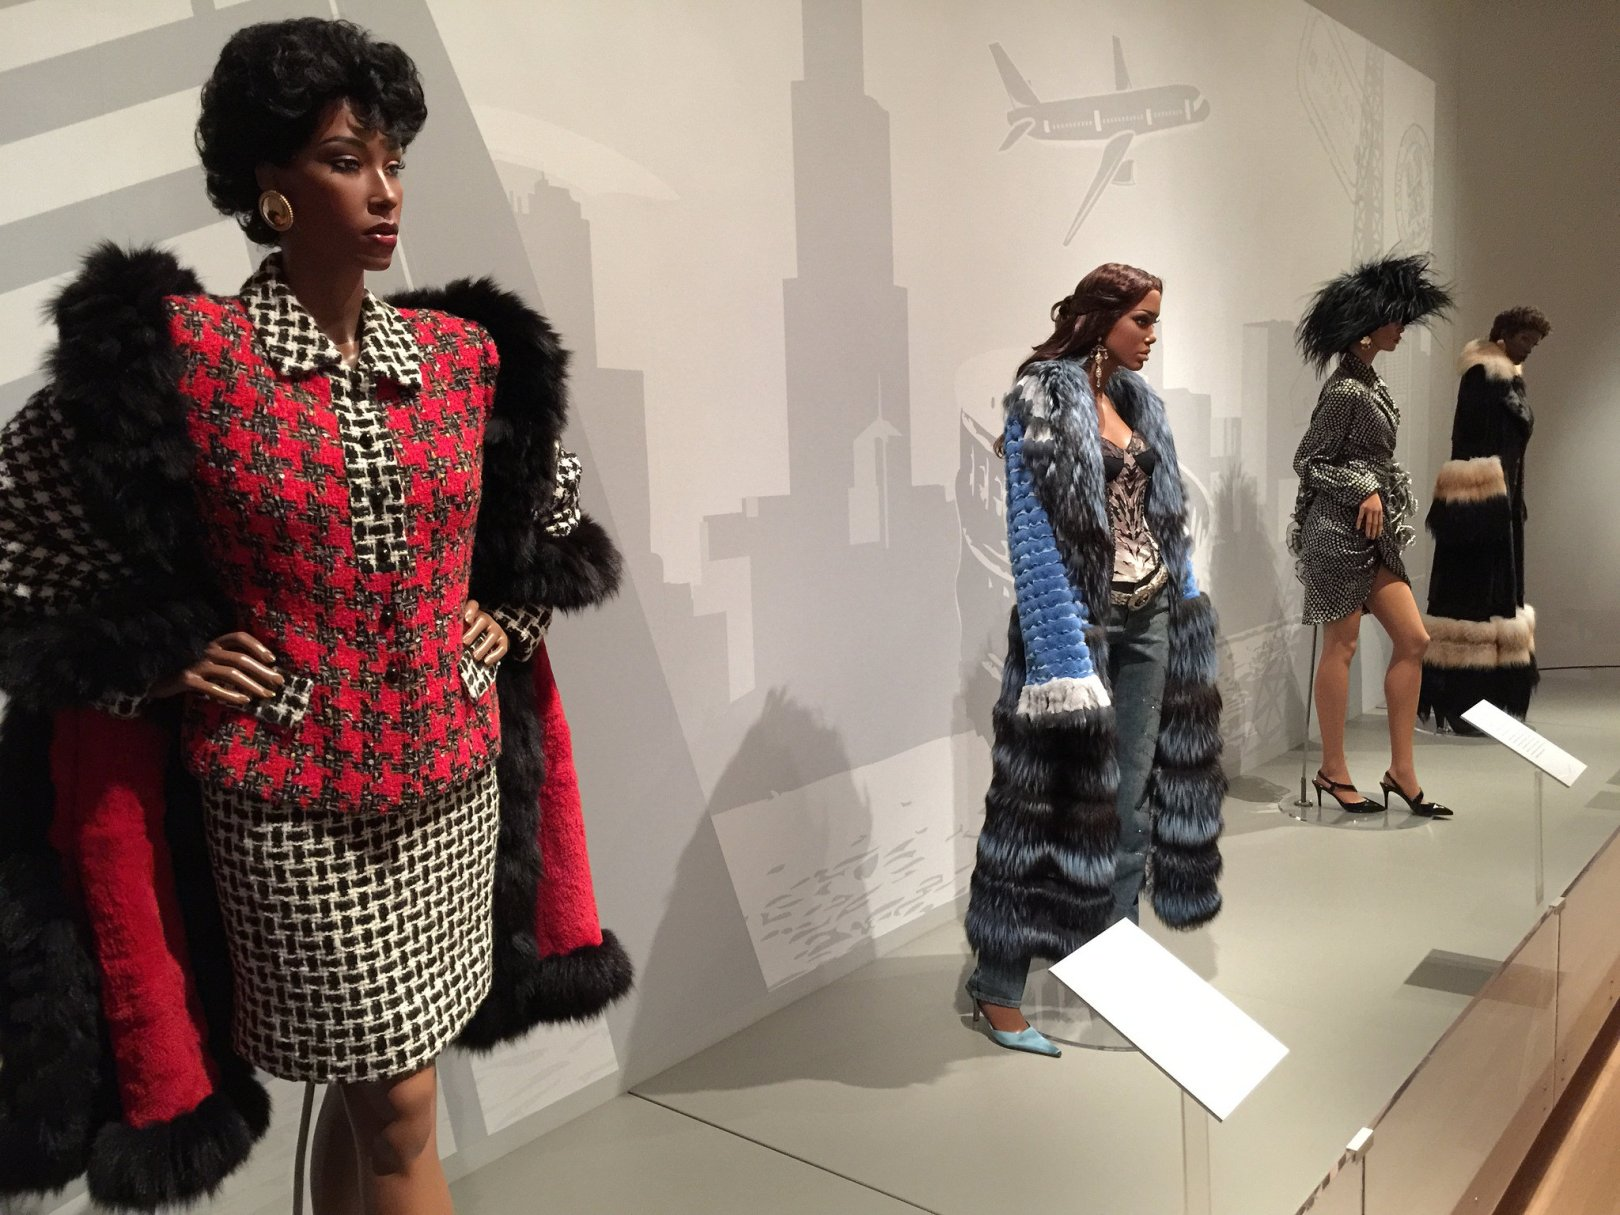 Inspiring Beauty: Fifty Years of Ebony Fashion Fair exhibit developed by the Chicago History Museum in cooperation with Johnson Publishing Company, LLC, presented by the Costume Council of the Chicago History Museum, and toured by International Arts & Artists, Washington, D.C.